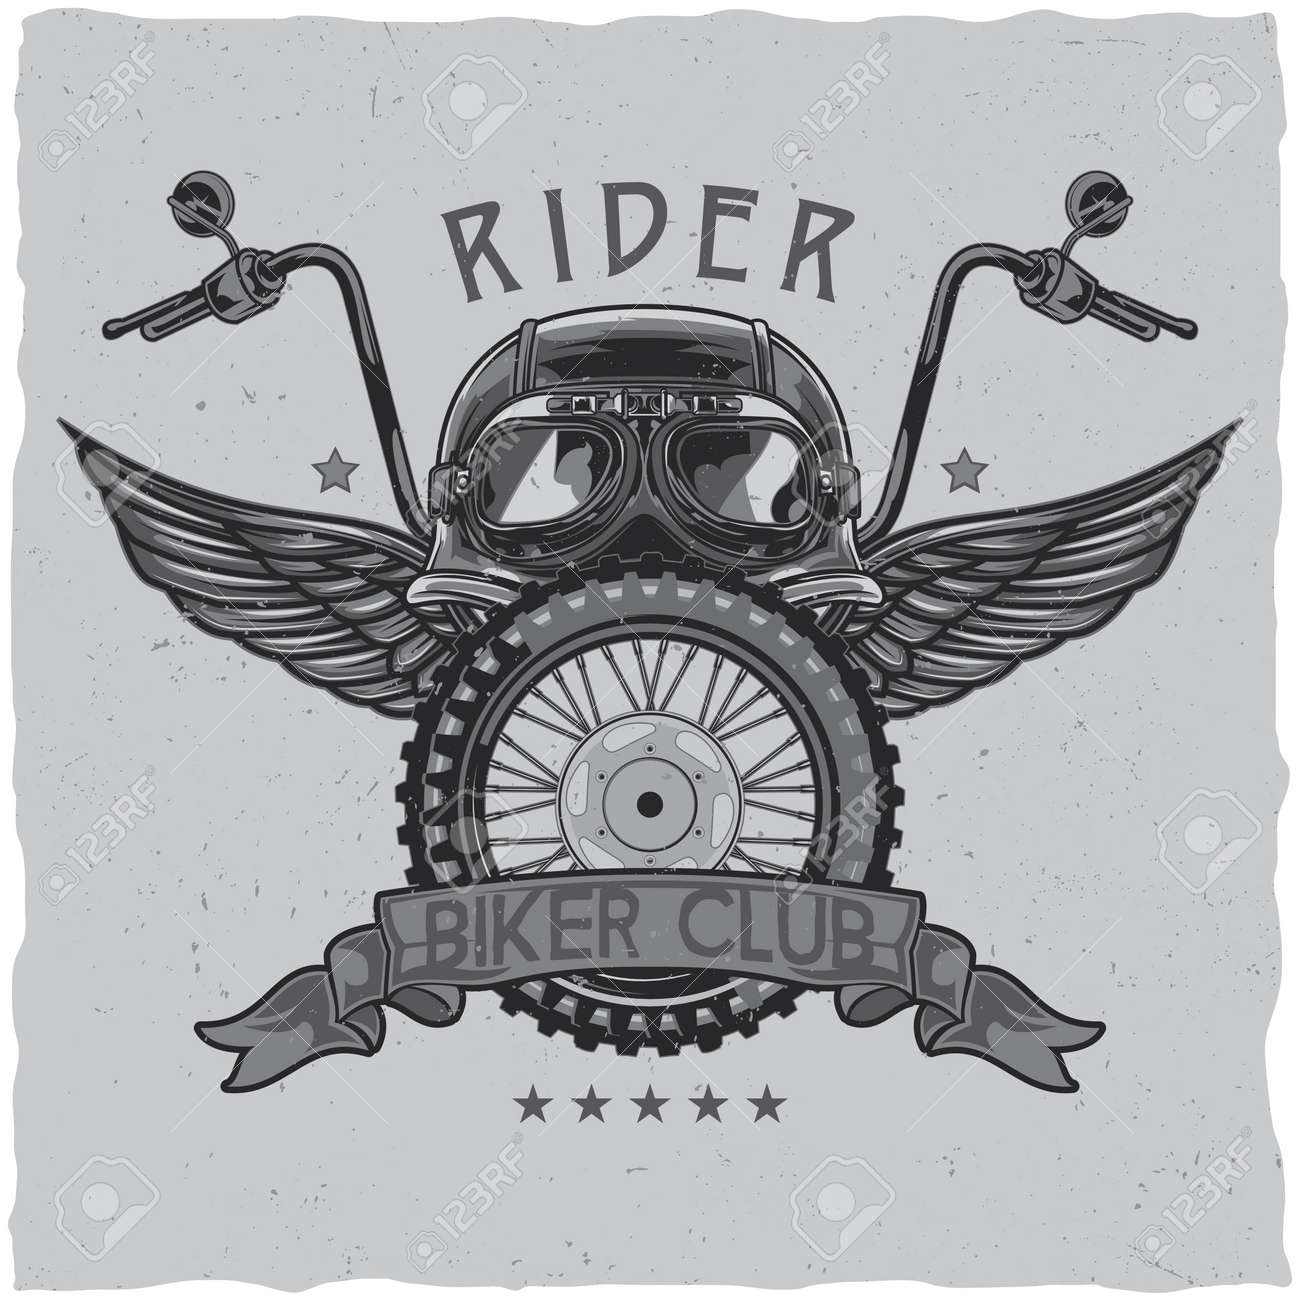 Motorcycle theme t-shirt label design with illustration of helmet, glasses, wheel and wings - 166499102